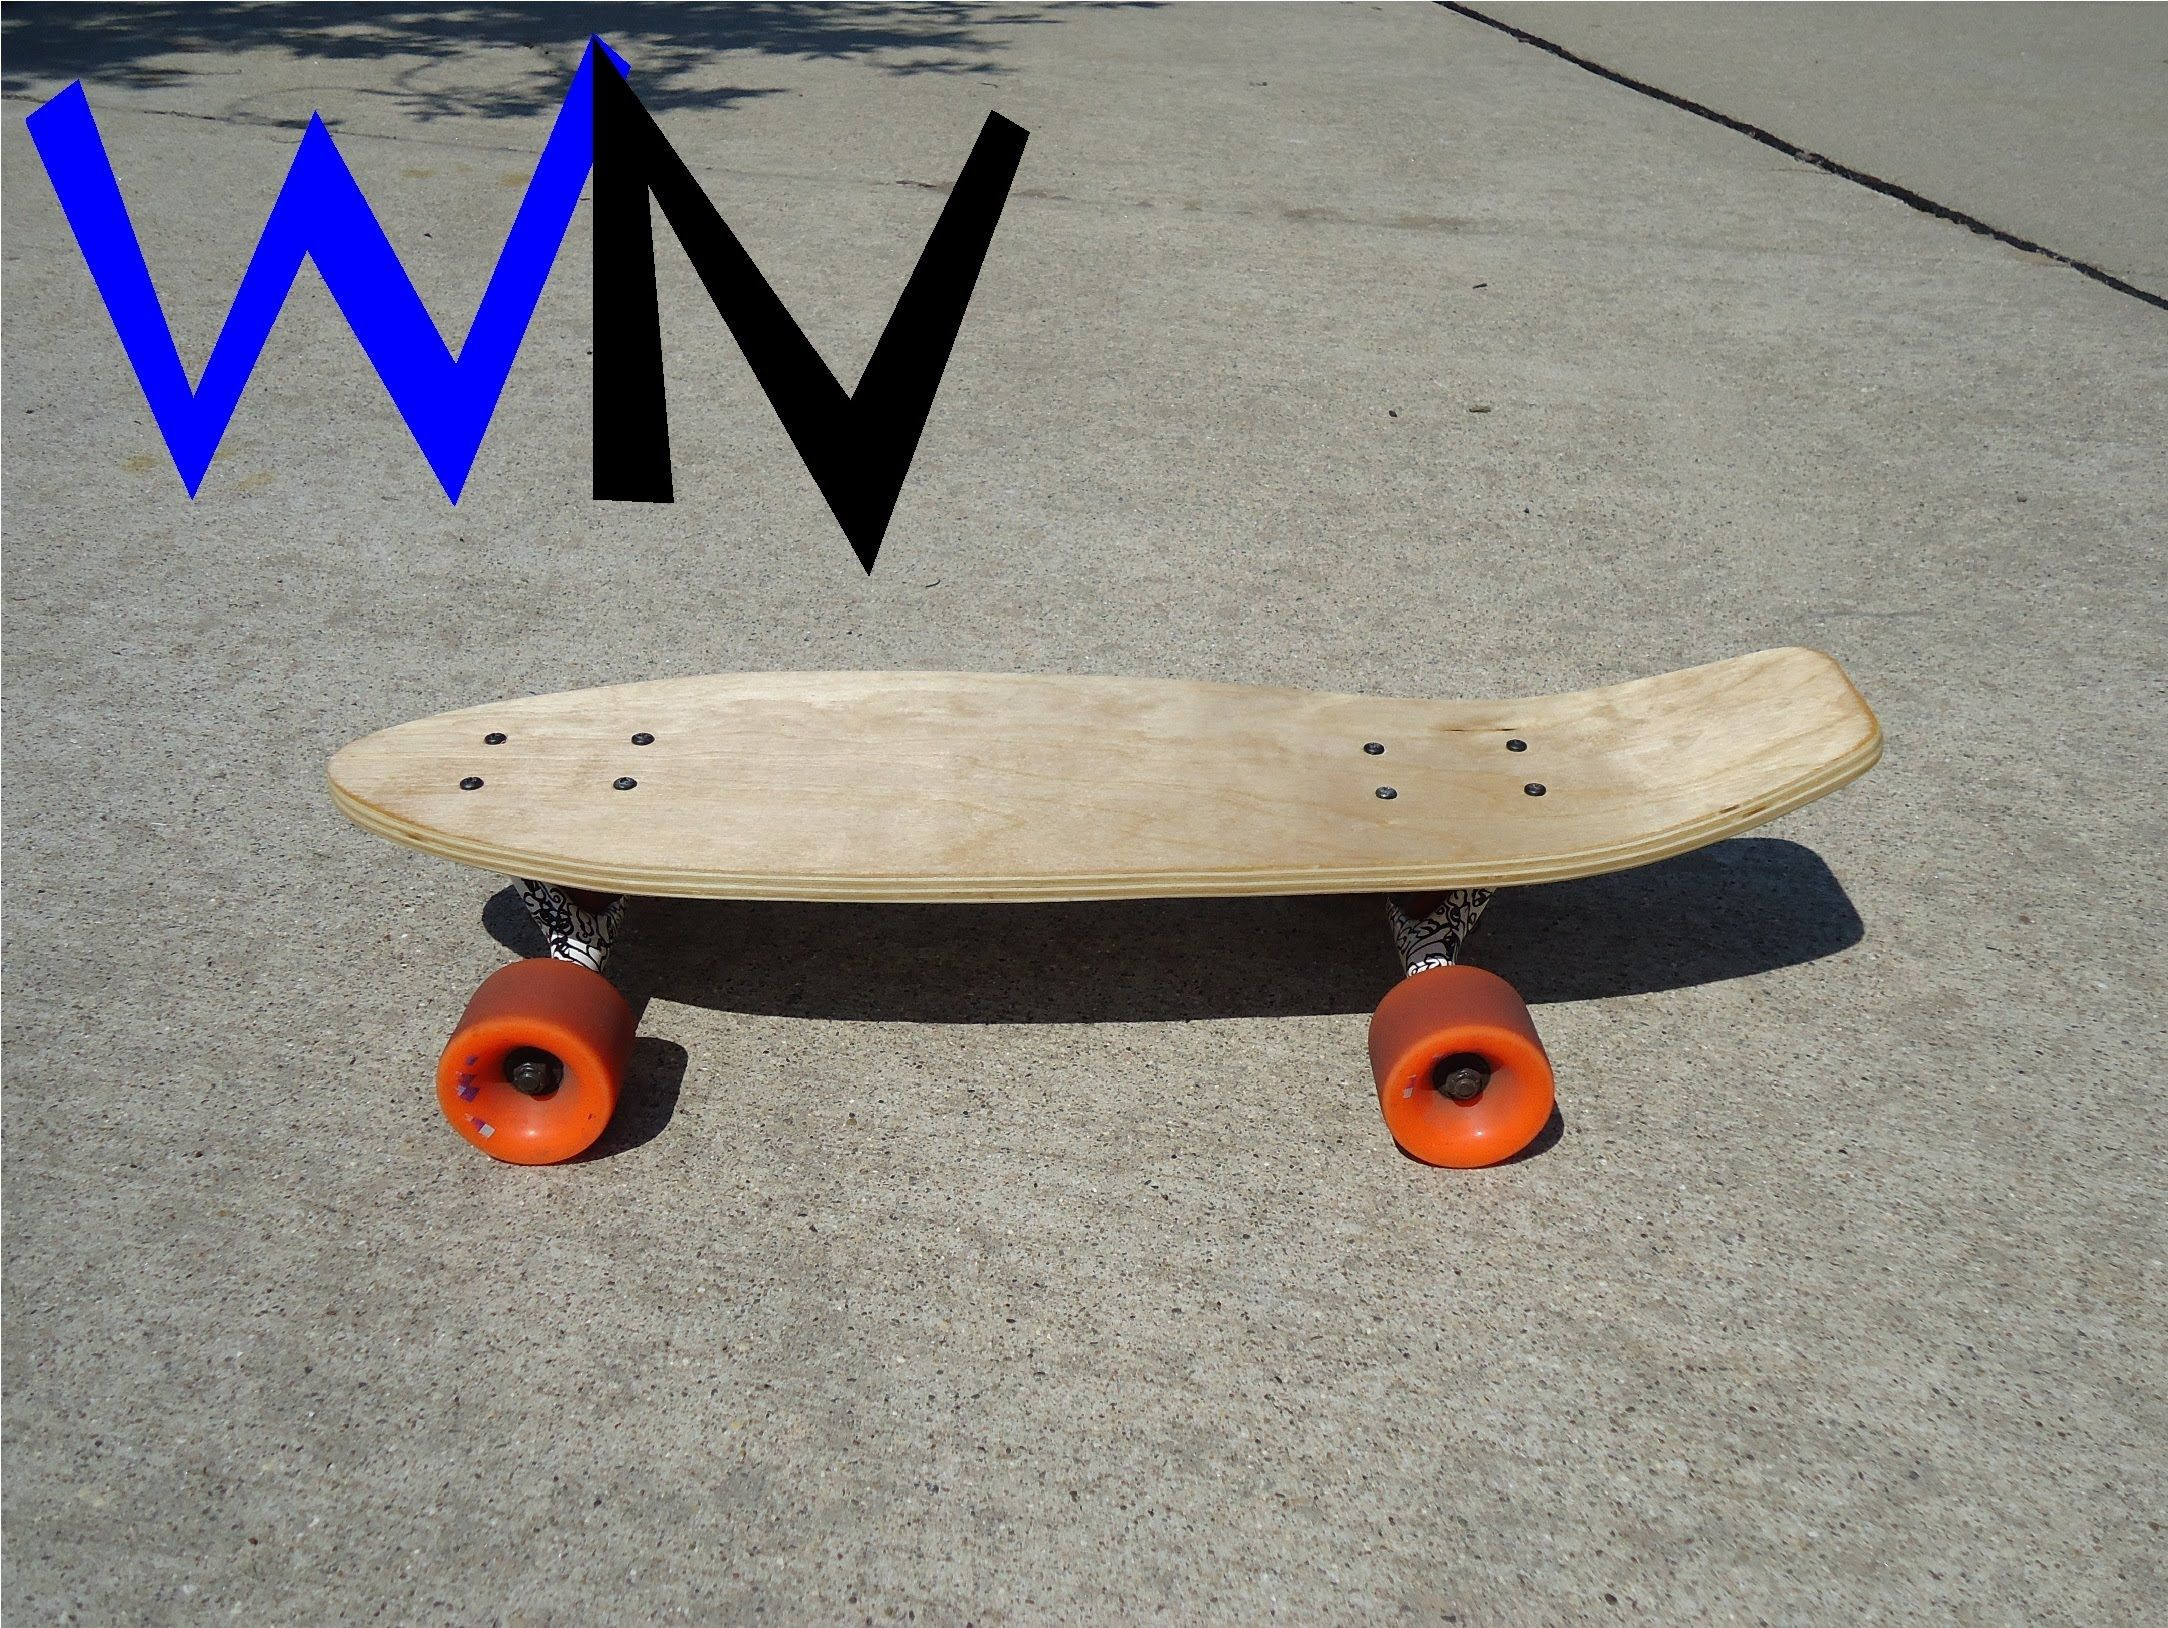 How To Build A Cruiser Board Free Full Size Templates Cruiser Boards Penny Board Palet Projects